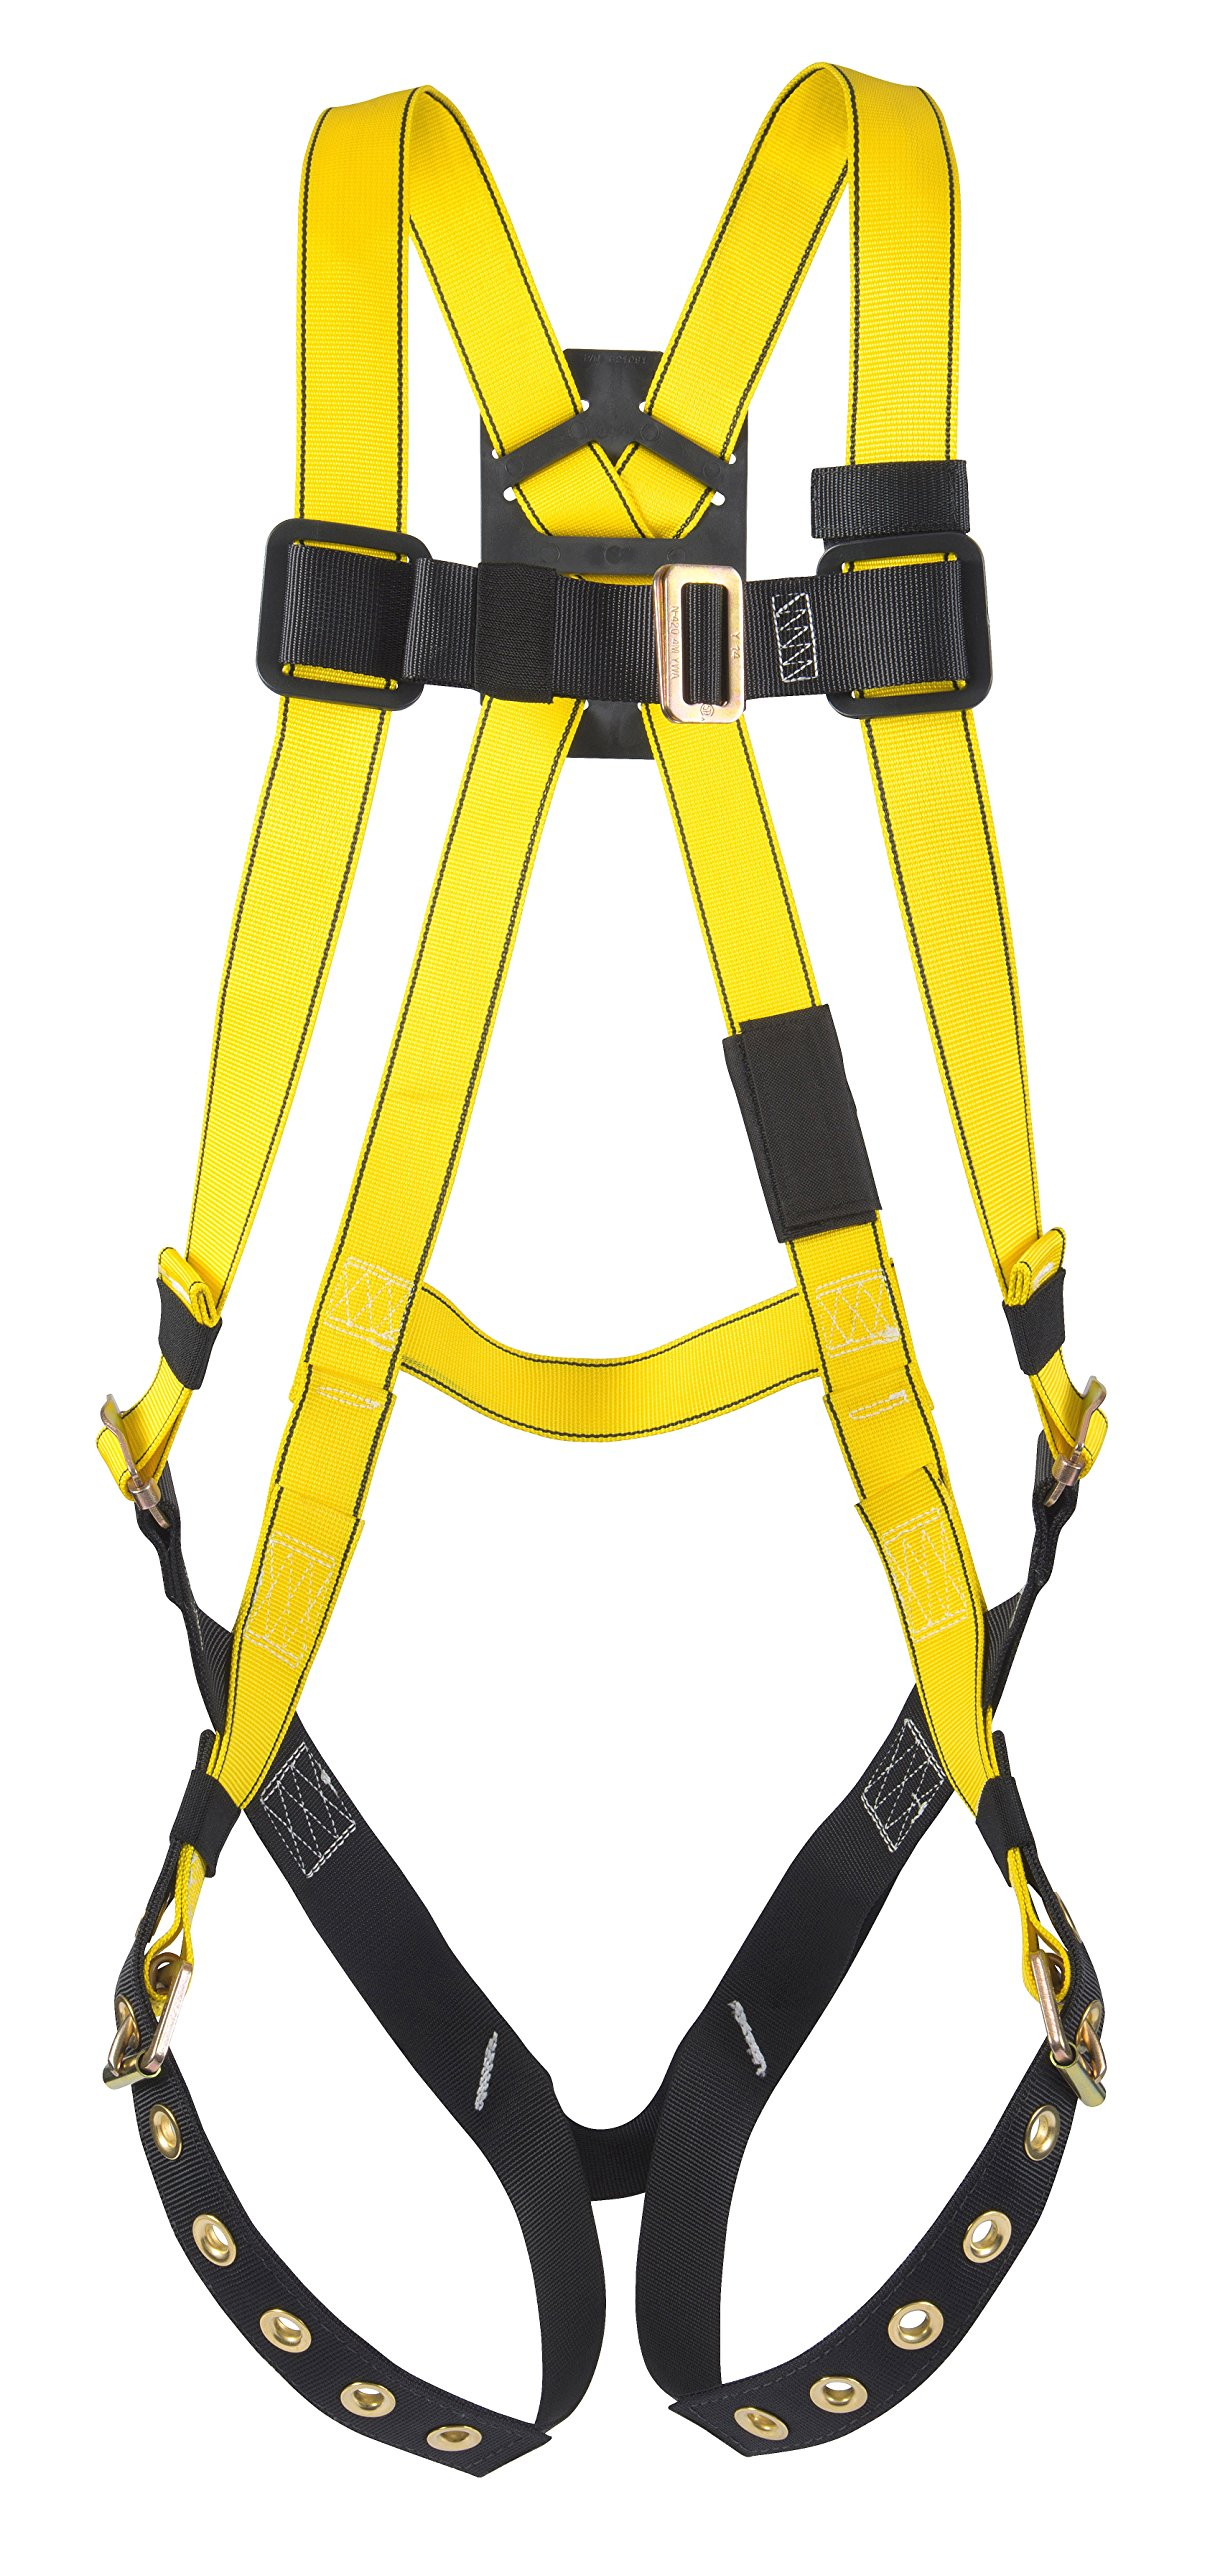 MSA 10072481 Workman Harness with Back D-Ring, Qwik-Fit Leg Straps and Chest Strap, Super X-Large